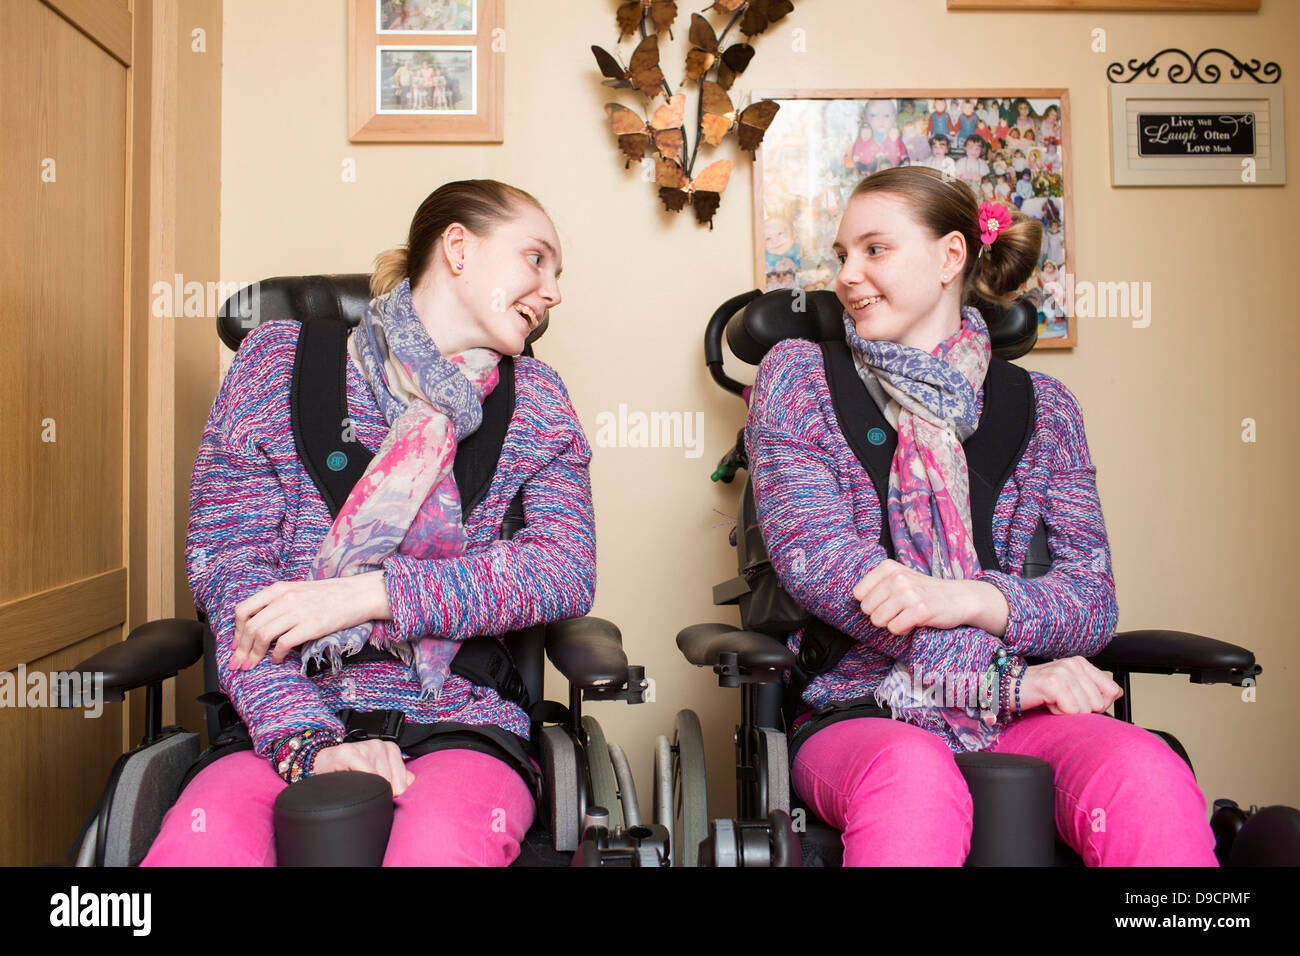 l r catherine and kirstie field at home in llanelli stock photo